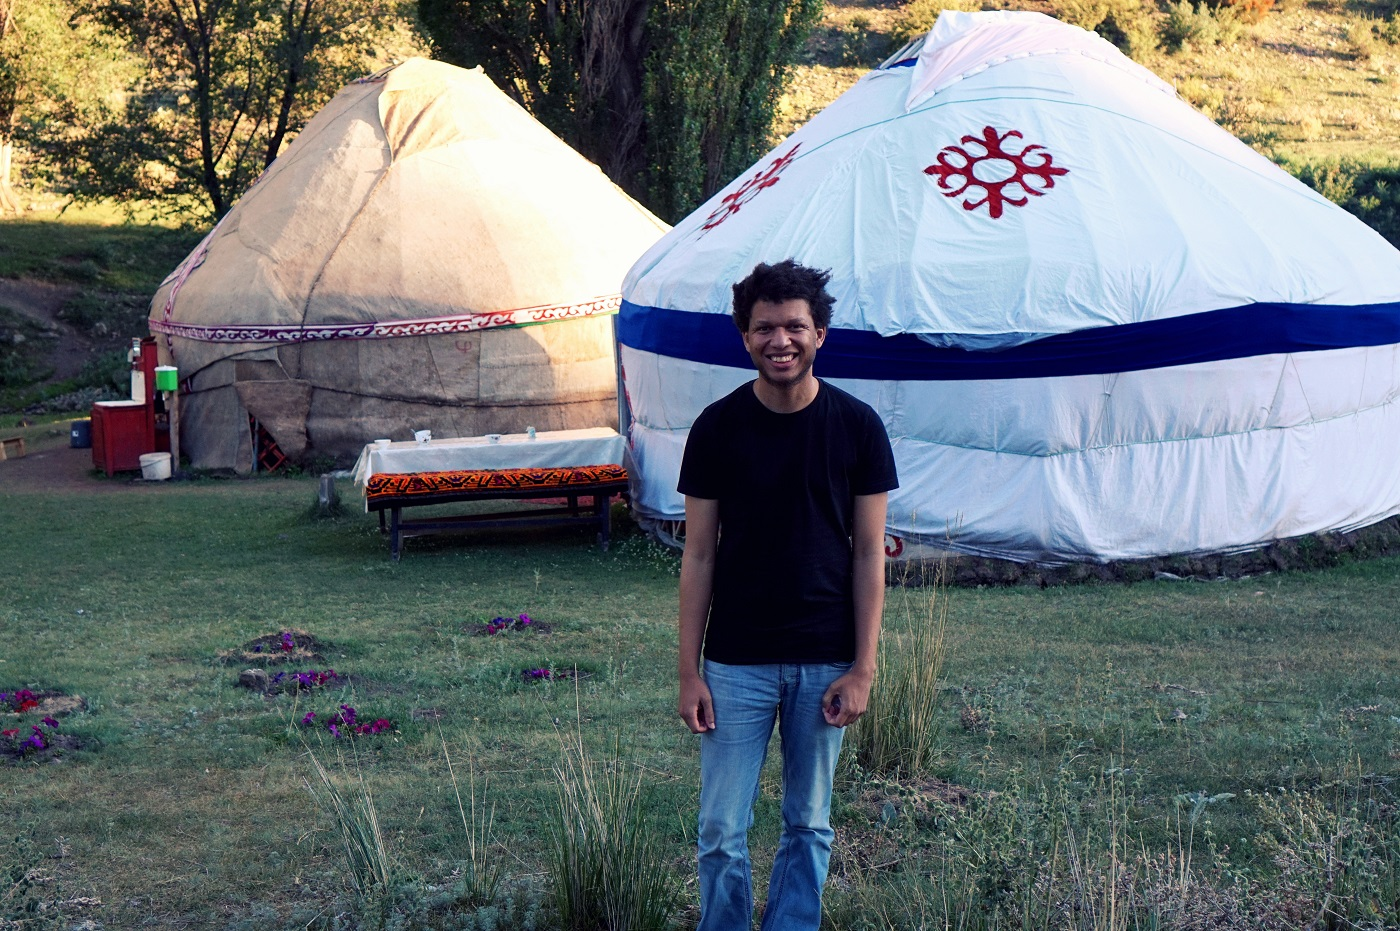 yurt life in kazakhstan - nomad life, steppe